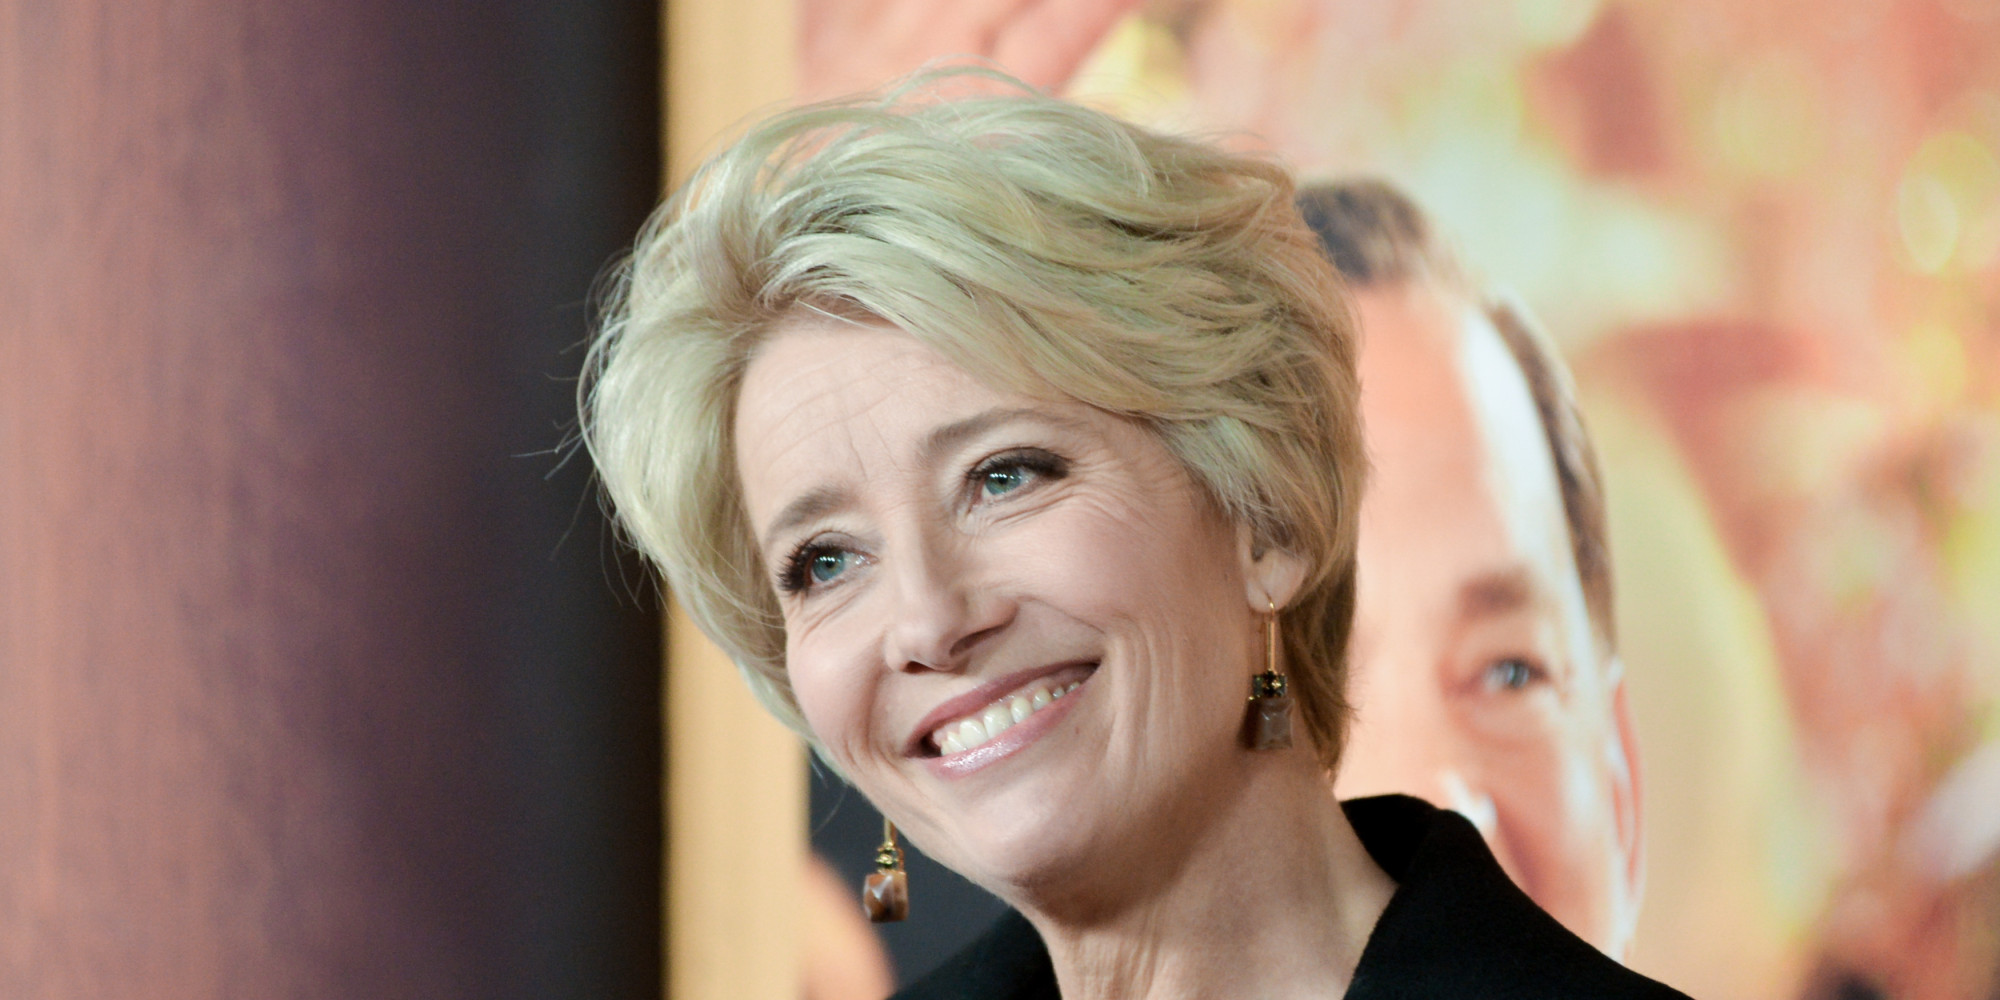 Emma Thompson was born in London on April 15 1959 into a family of actors her father was Eric Thompson who has passed away and her mother